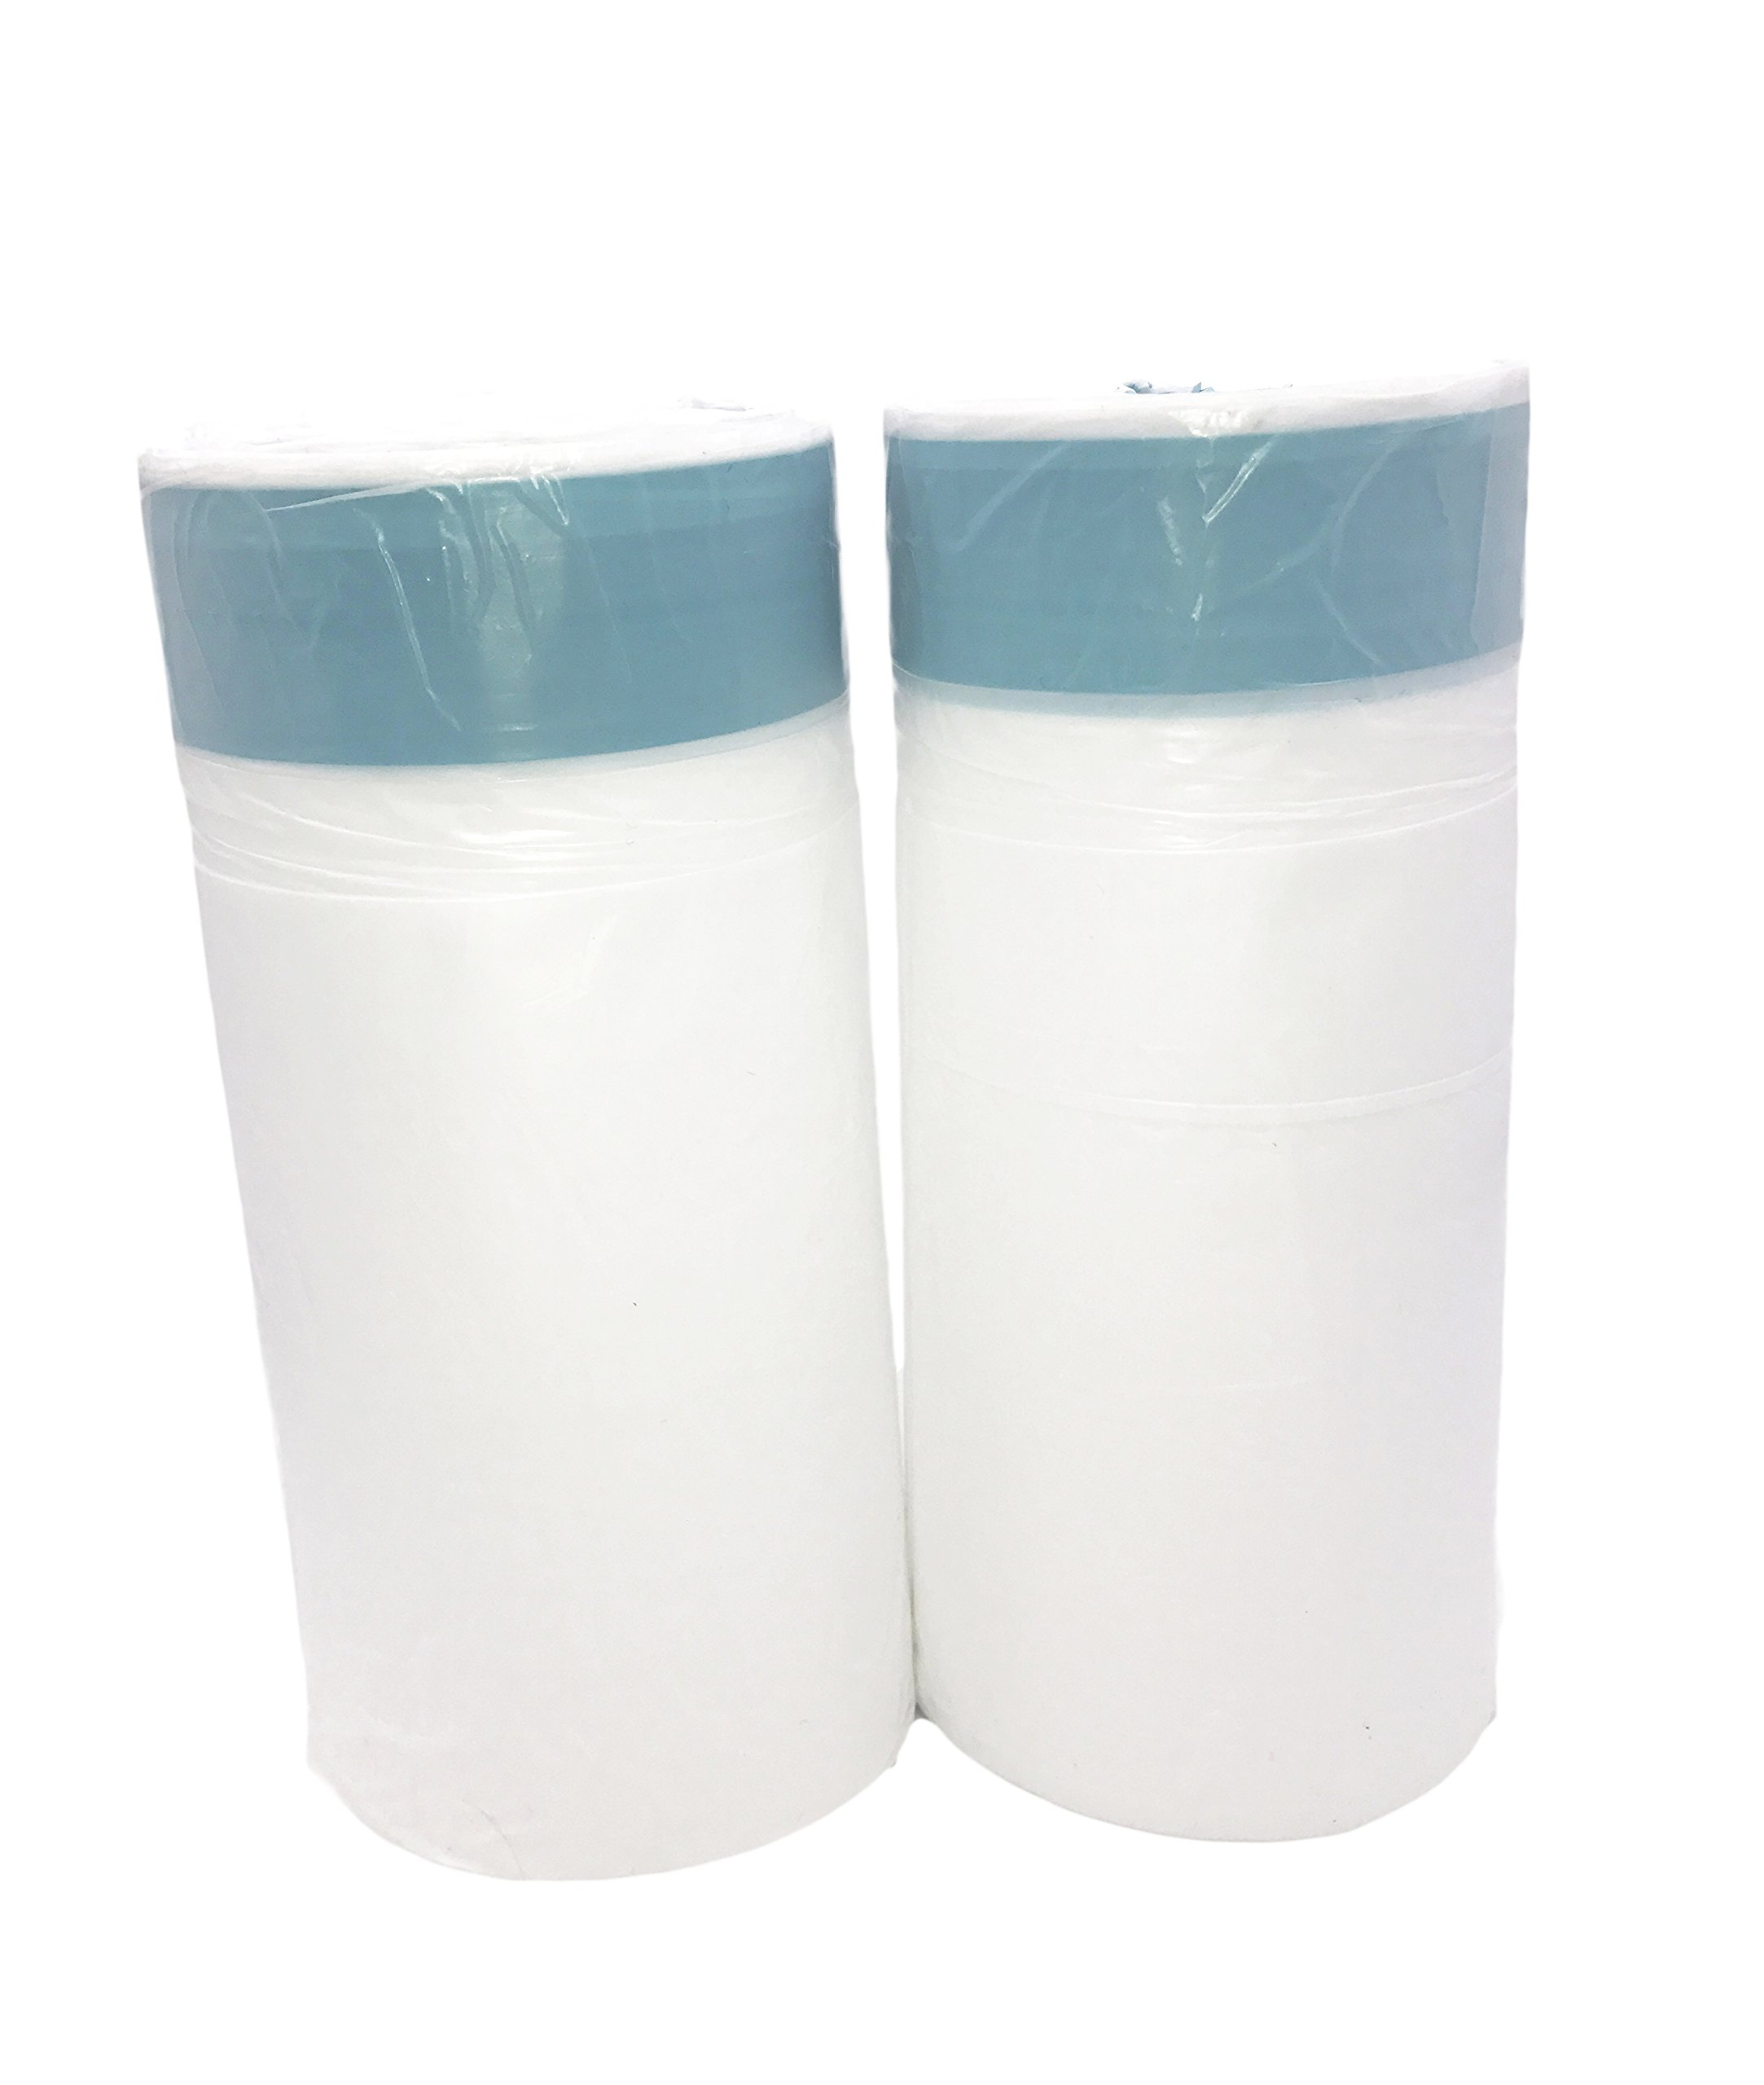 W&S 2.3 Gallon Kitchen Drawstring Strong Trash Bags, Heavy Duty, Clear, 120 Counts/ 2 Rolls by W&S (Image #1)